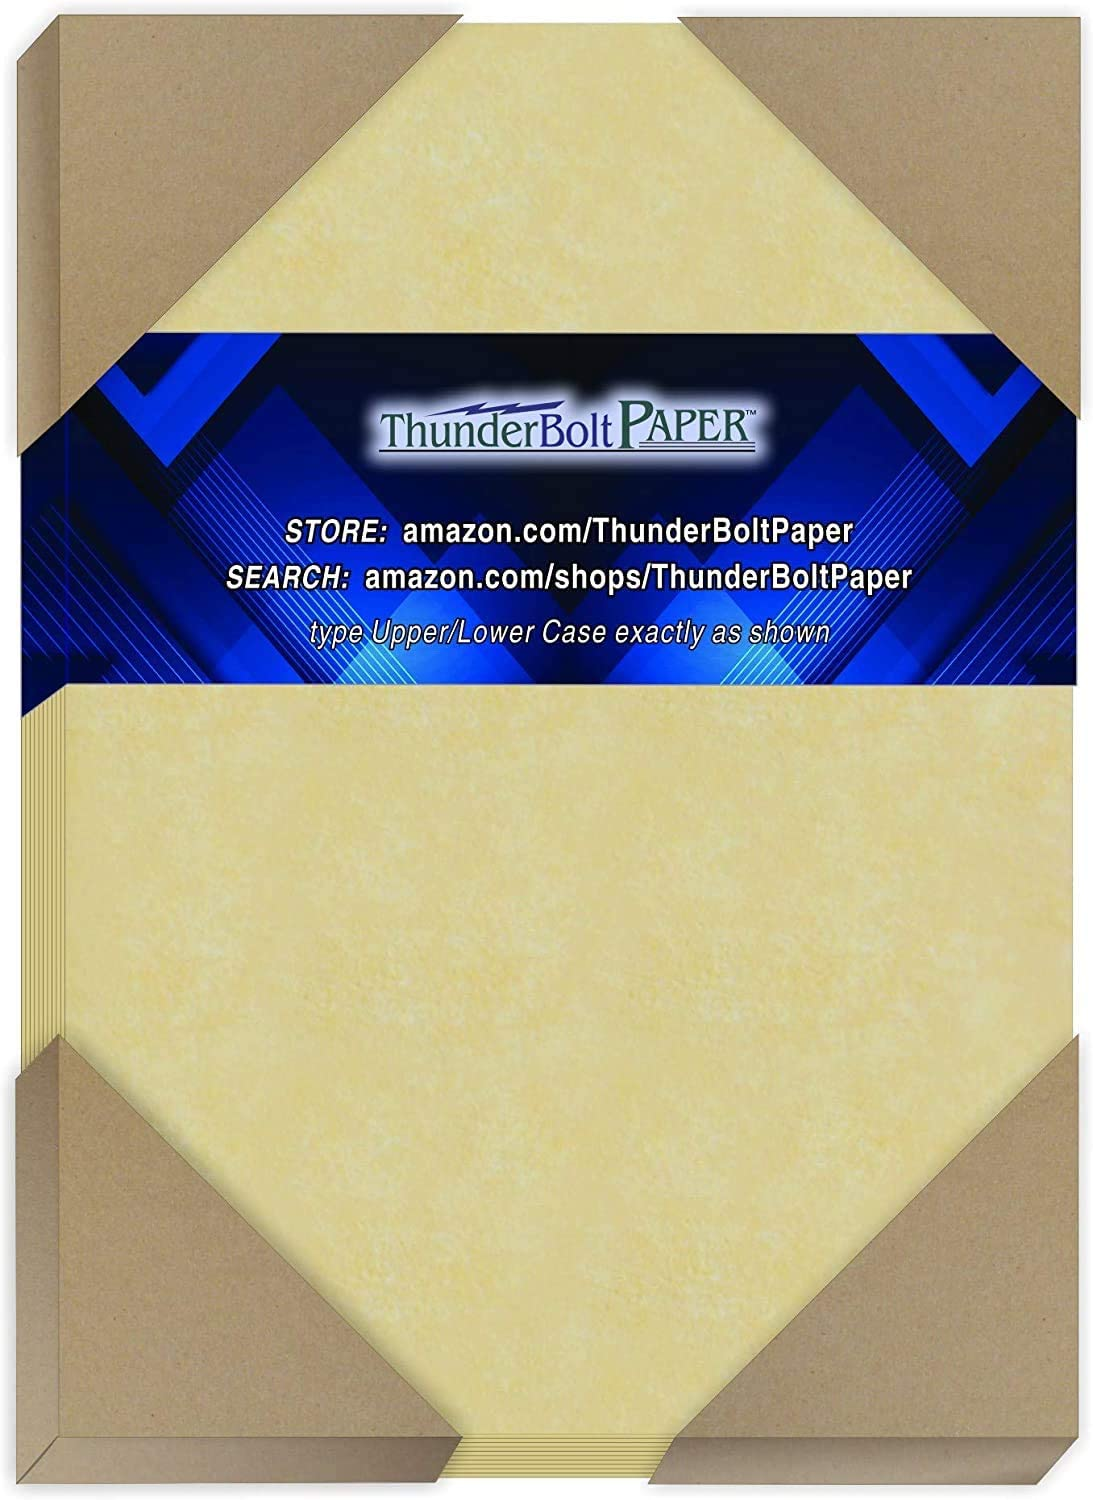 200 Gold Parchment 65lb Cover Weight Paper - 5